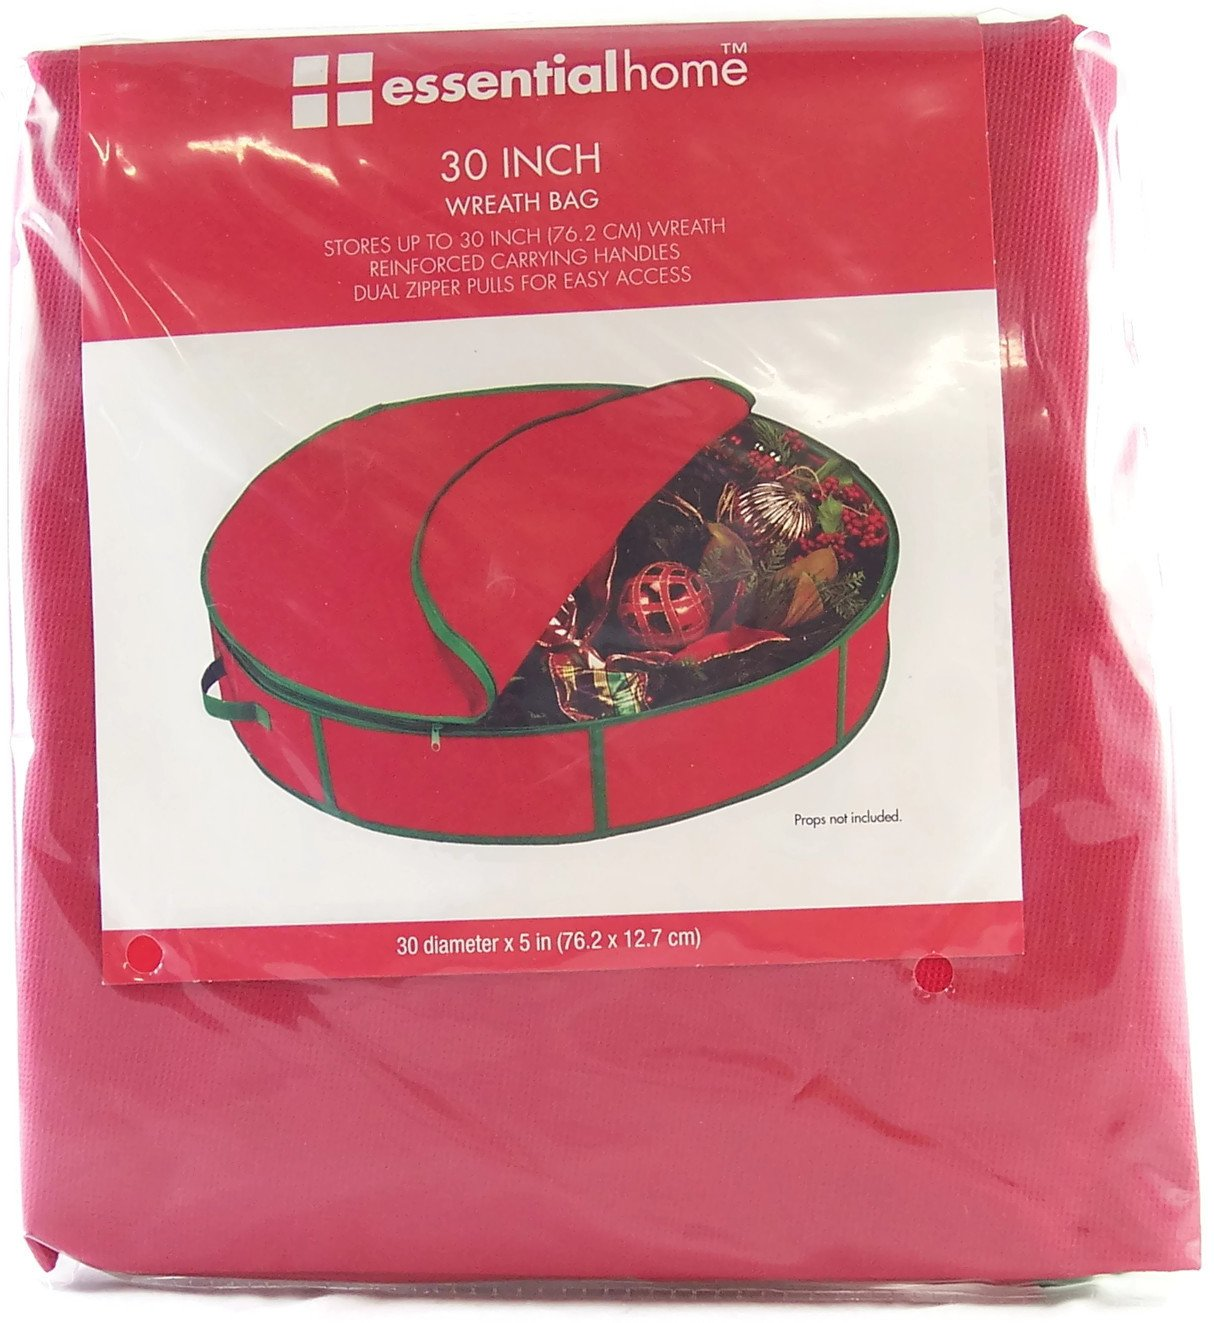 Essentialhome Wreath Storage Bag 30'' Diameter X 5'' Tall with Zipper and Carrying Handle- Red.